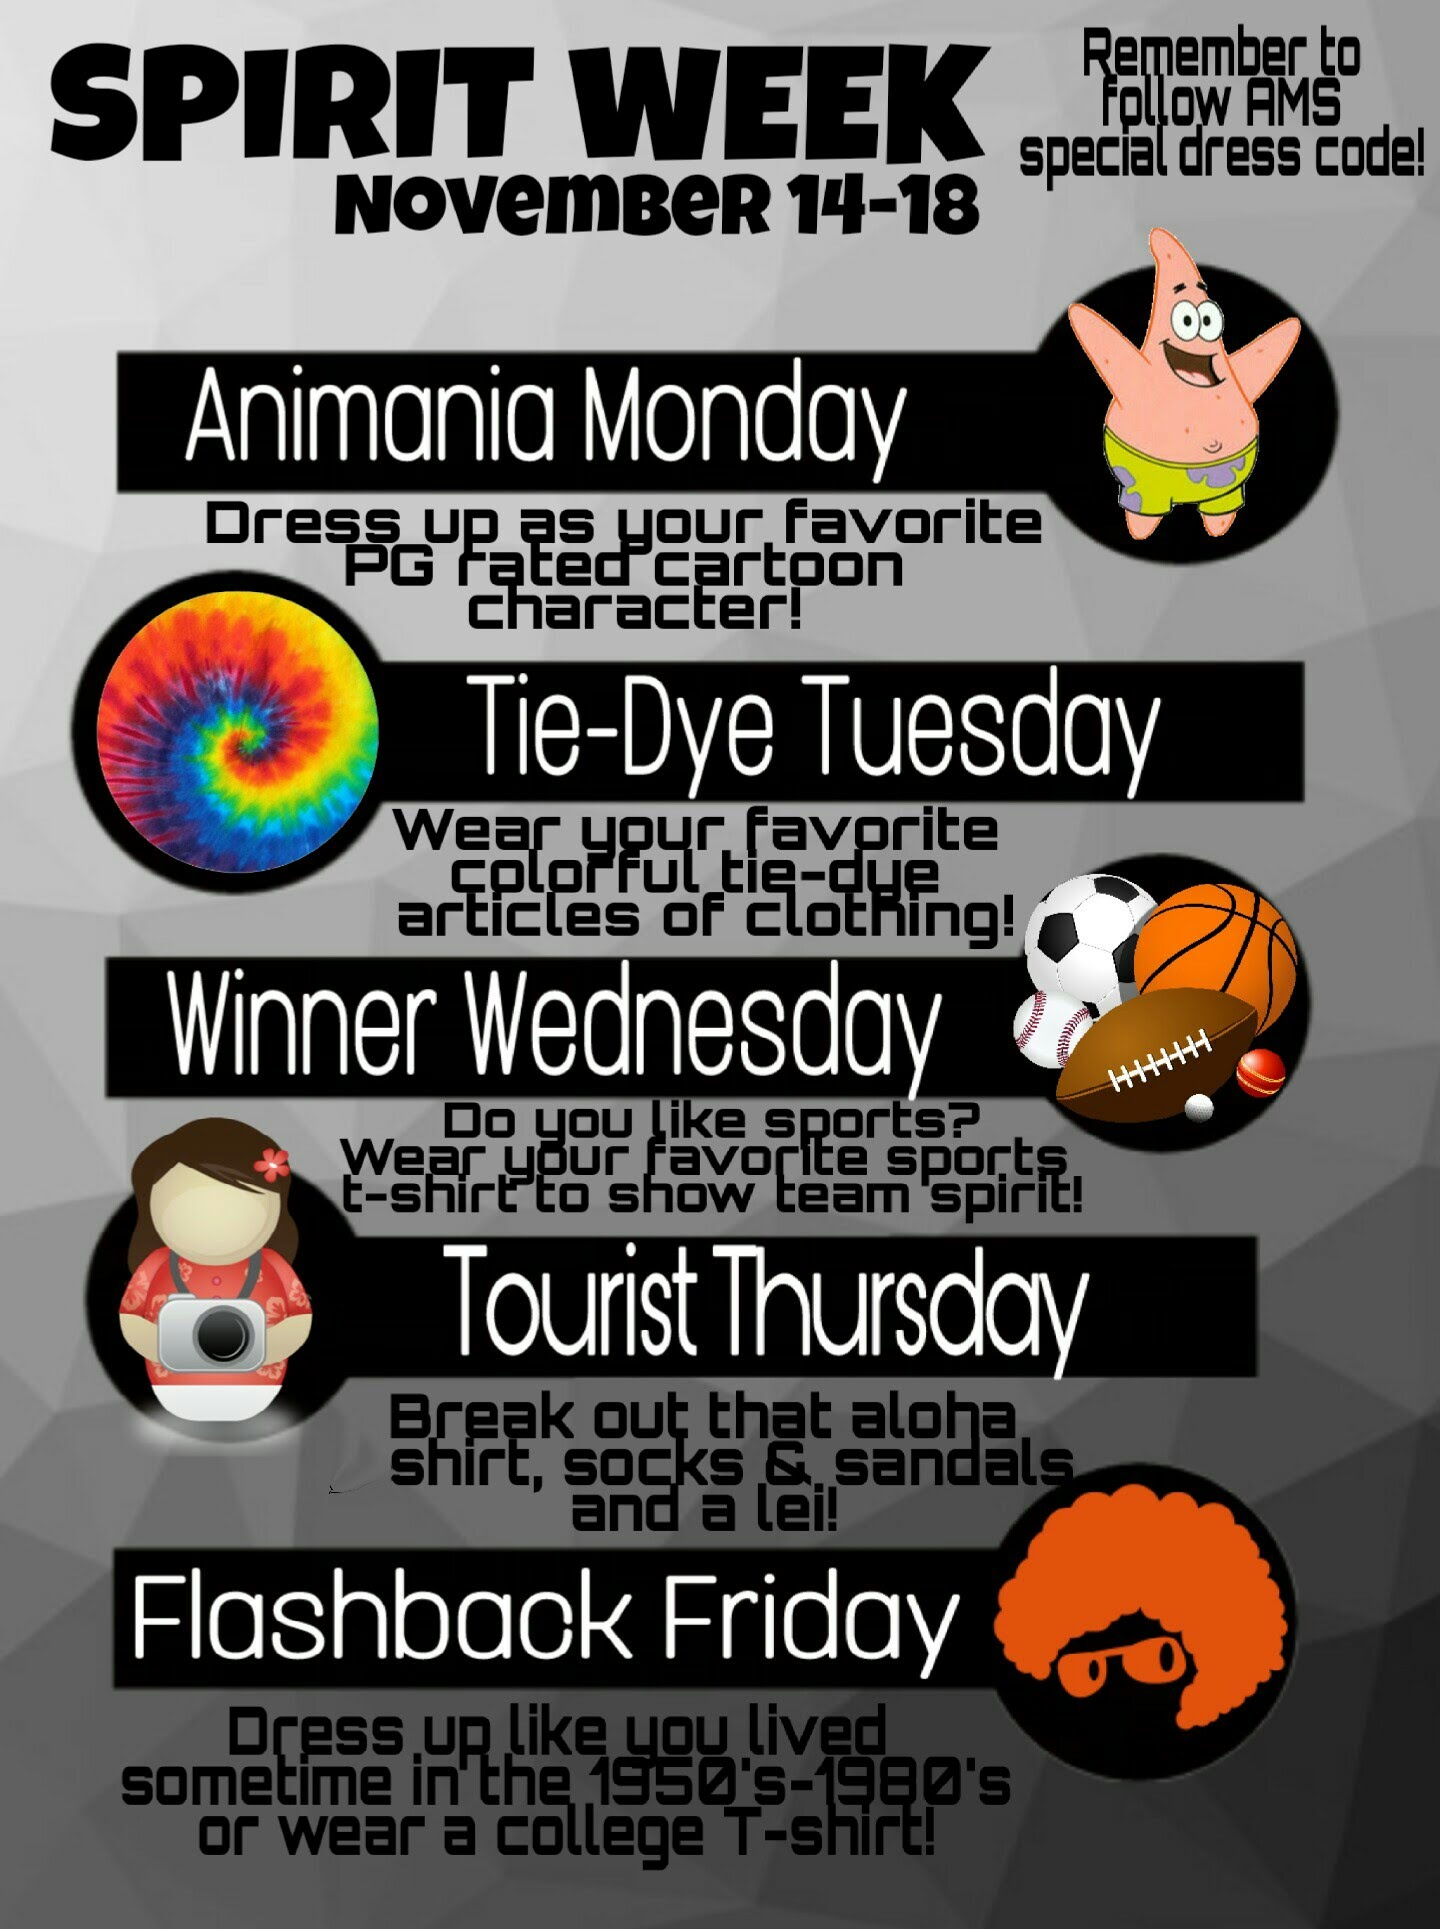 Spirit Week Nov 14-18. Animania Monday: Dress up as your favorite PG rated cartoon character! Tie-Dye Tuesday: Wear your favorite colorful tie-dye articles of clothing! Winner Wednesday: Do you like sports? Wear your favorite sports t-shirt to show team spirit! Tourist Thursday: Break out that aloha shirt, socks and sandals and a lei! Flashback Friday: Dress up like you lived sometime in the 1950's-1980's or wear a college t-shirt!